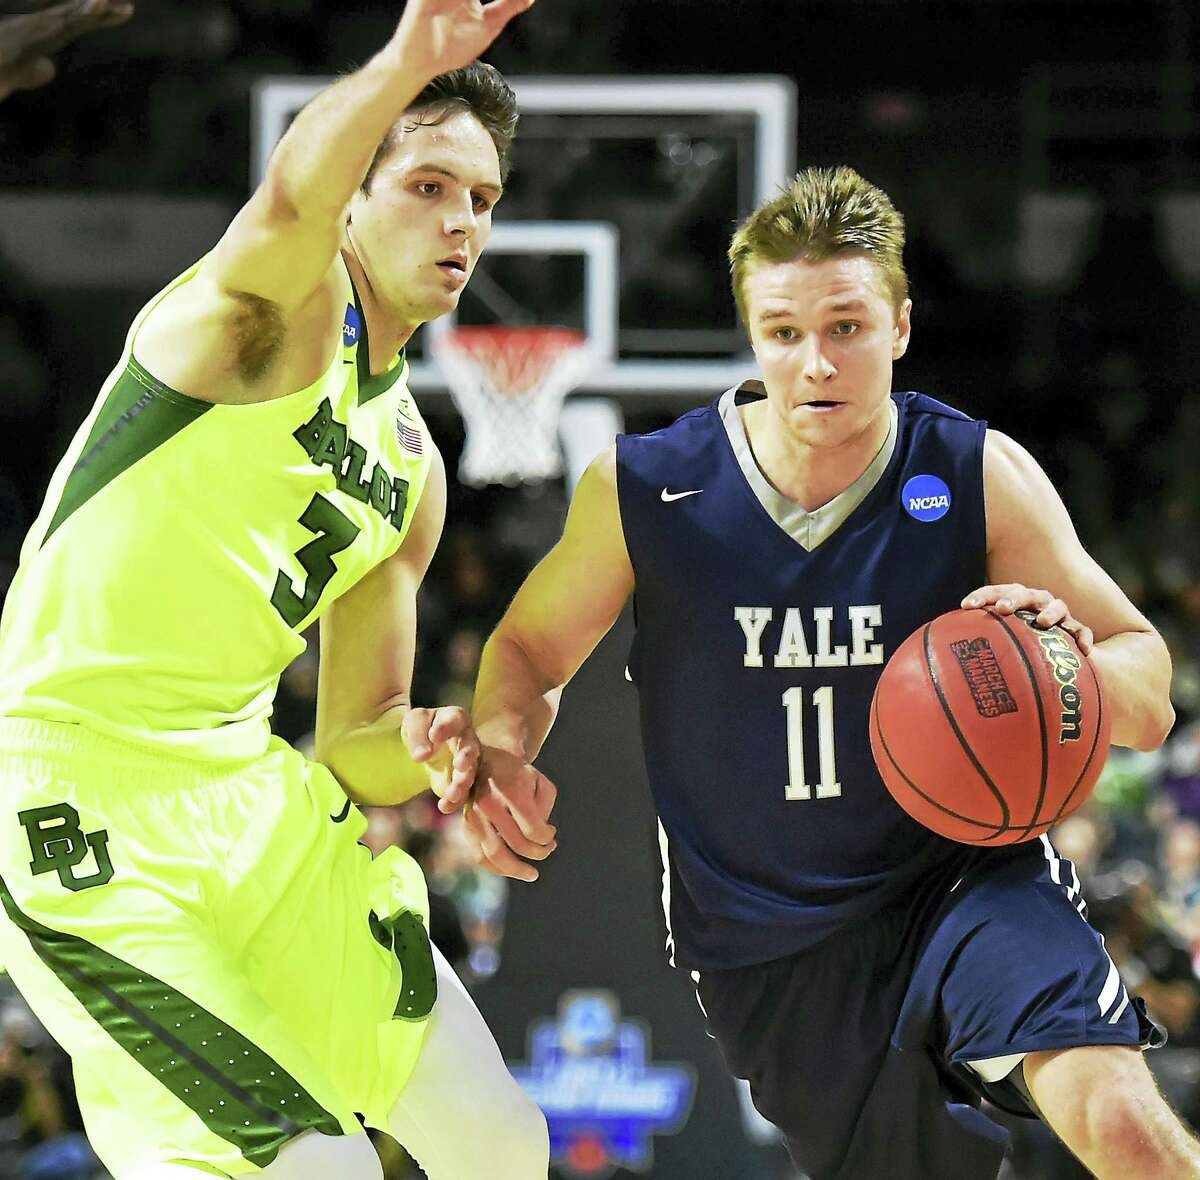 Yale's Makai Mason drives to the hoop as Baylor's Alex Copeland defends in the 79-75 victory for the Bulldogs in the first round of the 2016 NCAA Men's Basketball Tournament at the Dunkin' Donuts Center in Providence, RI. (Catherine Avalone/New Haven Register)